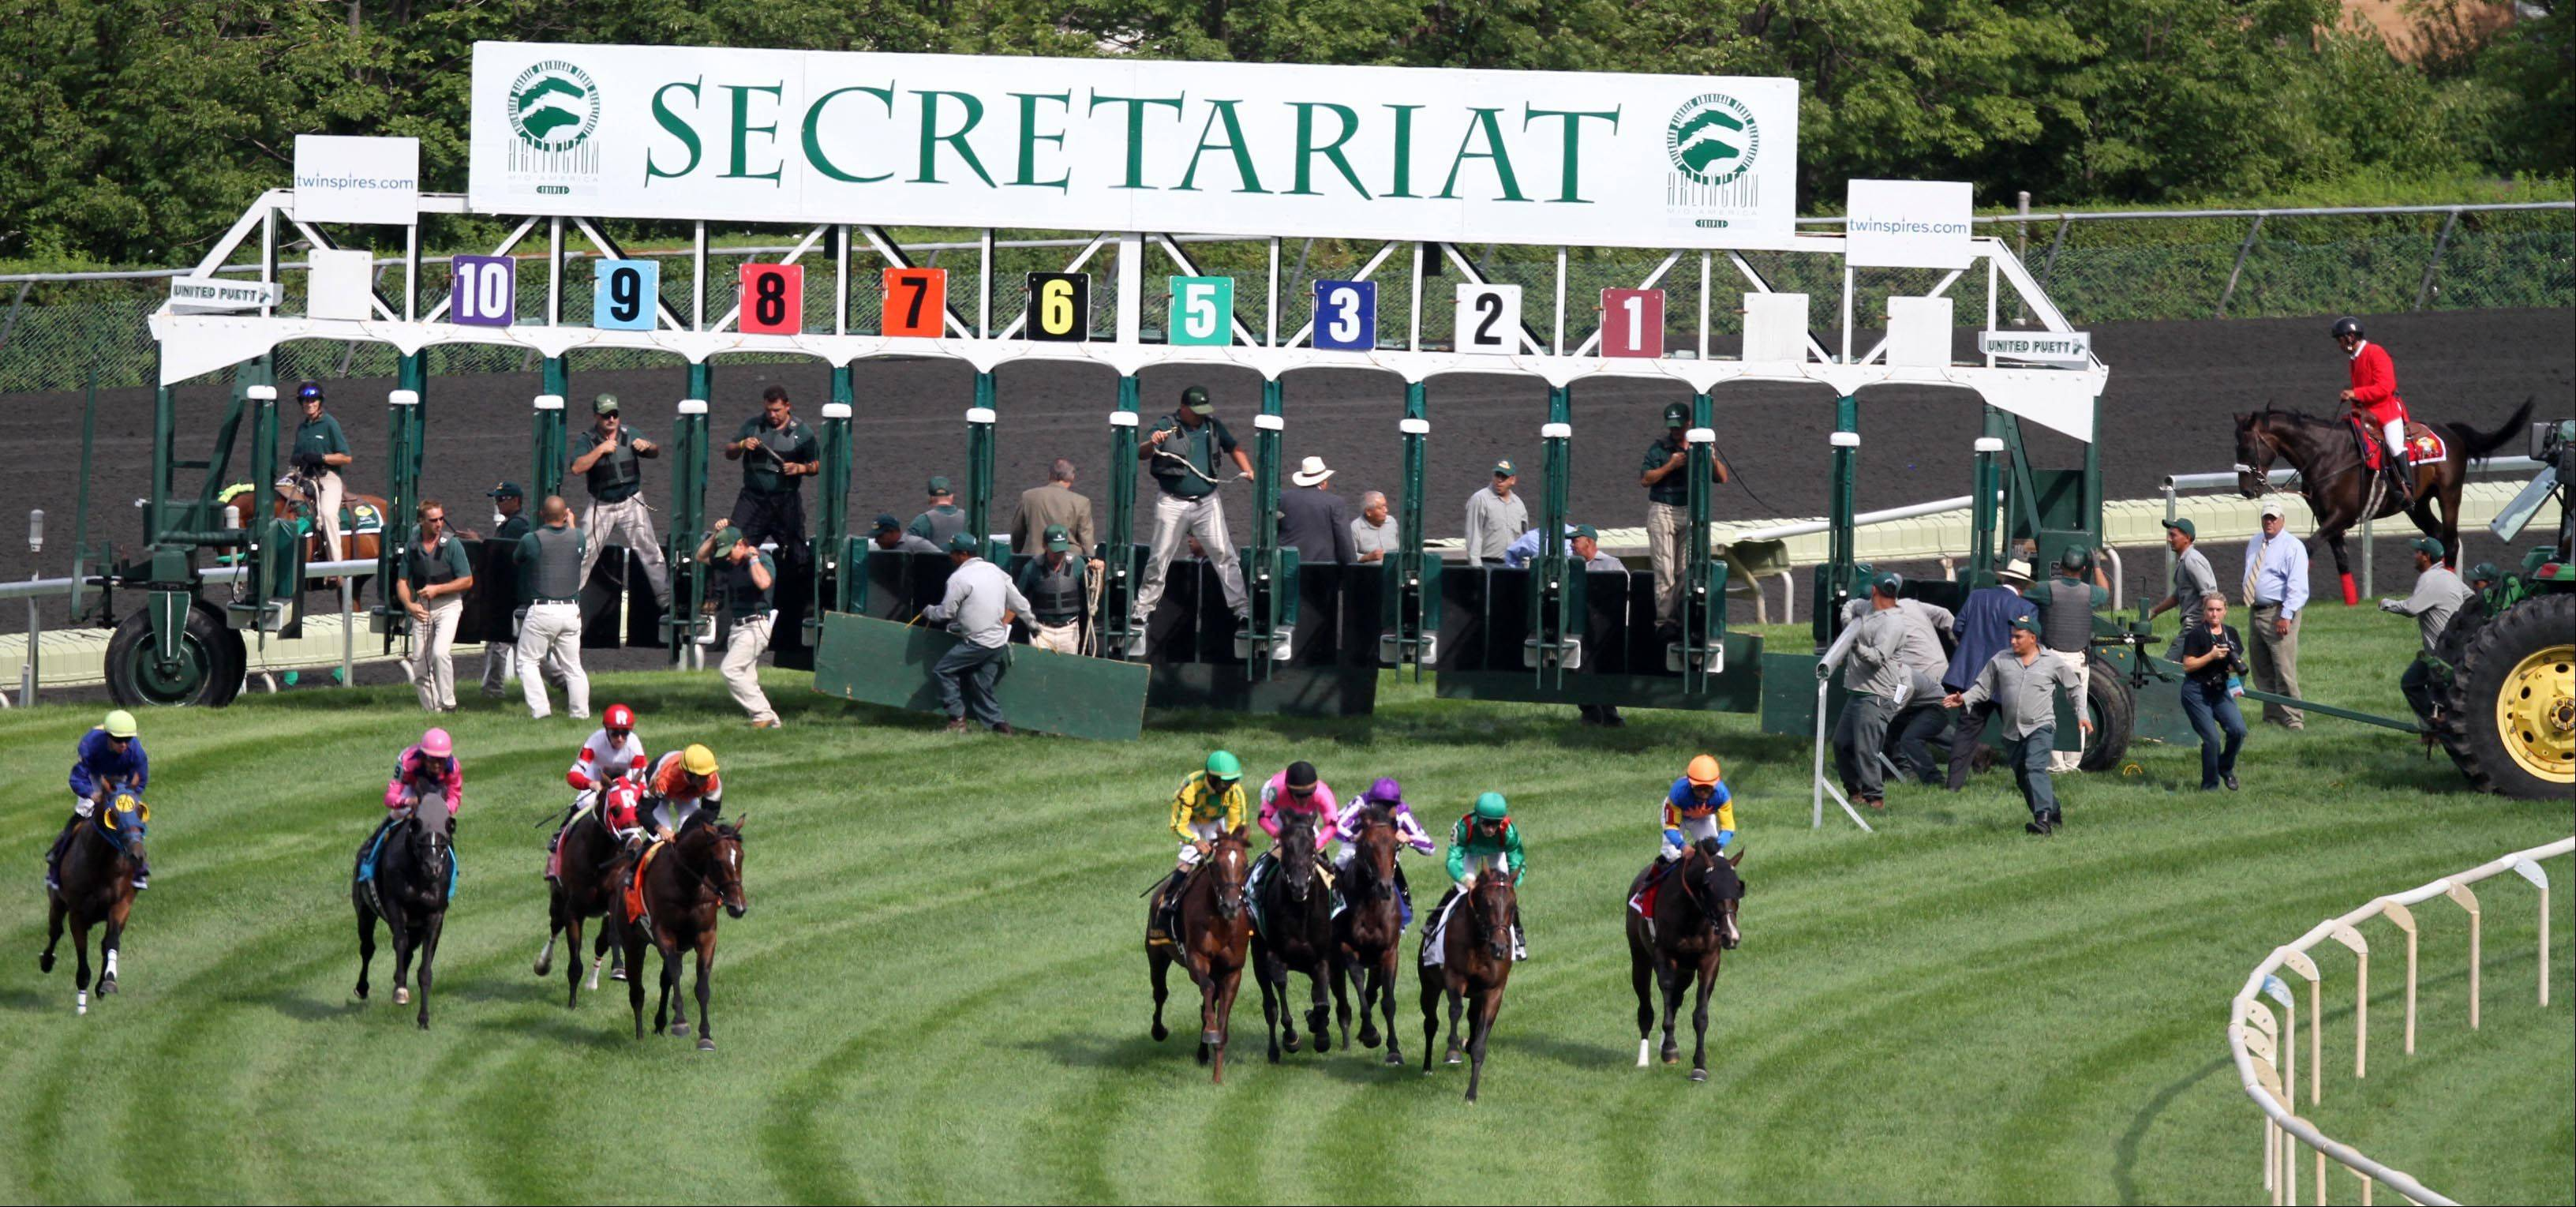 The start of the Secretariat Stakes at Arlington Park on Saturday.